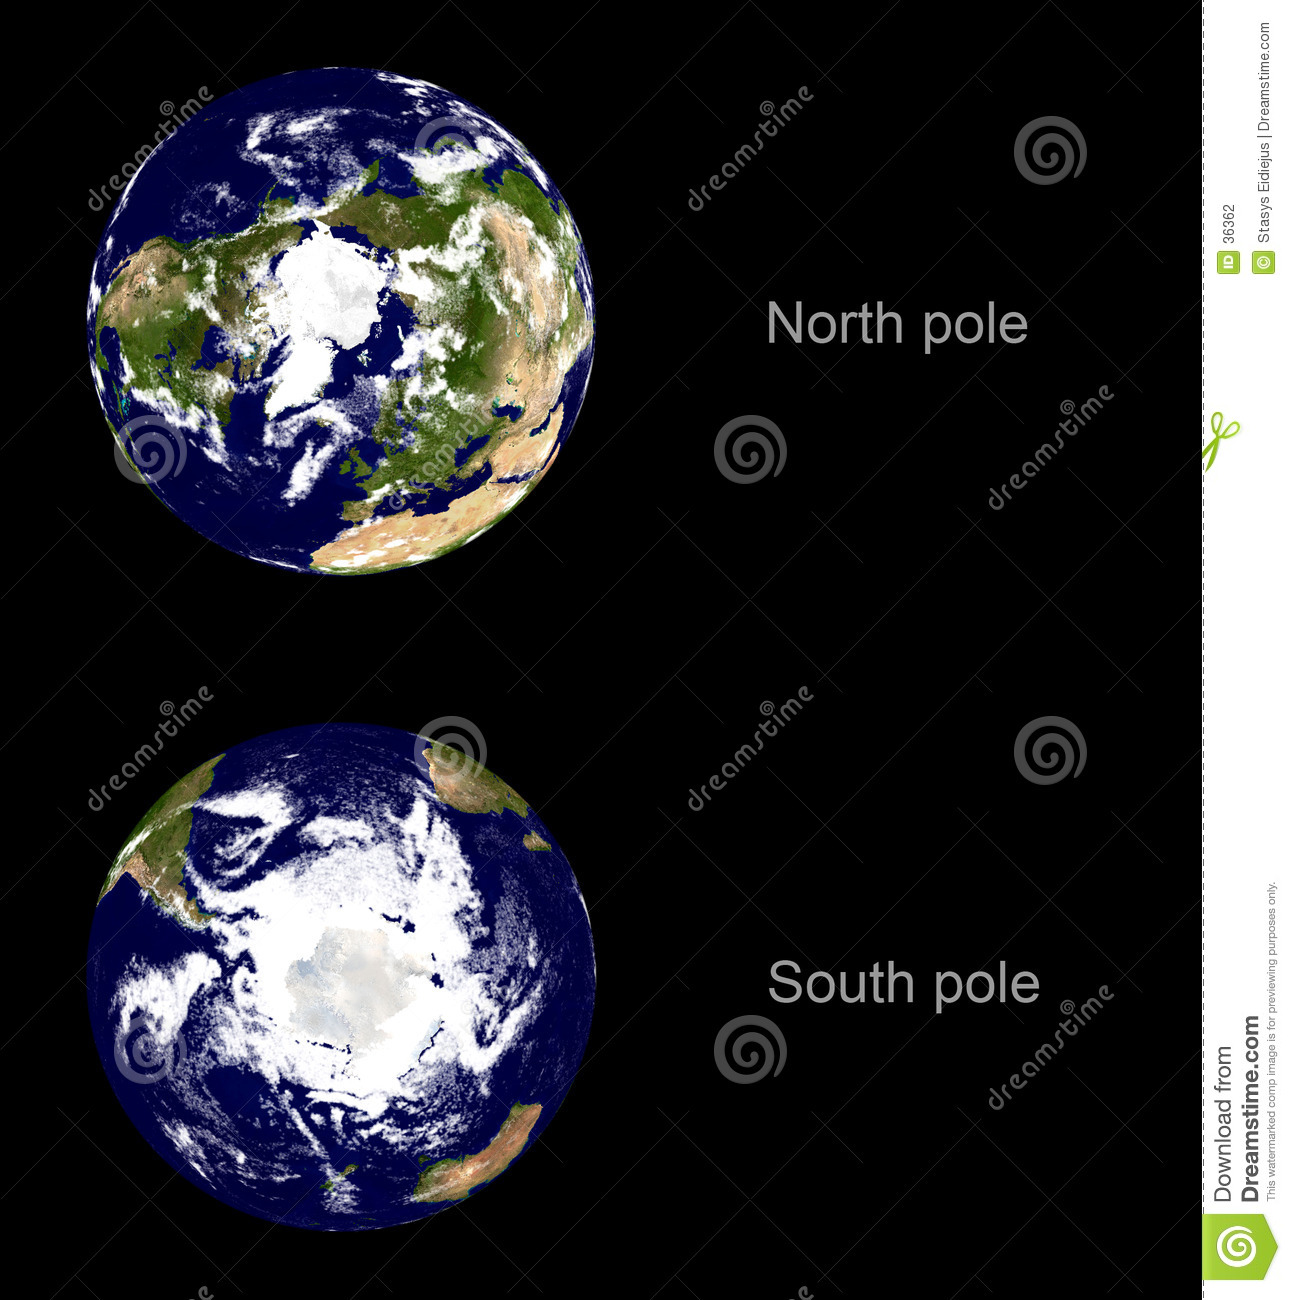 Earth planet, both poles